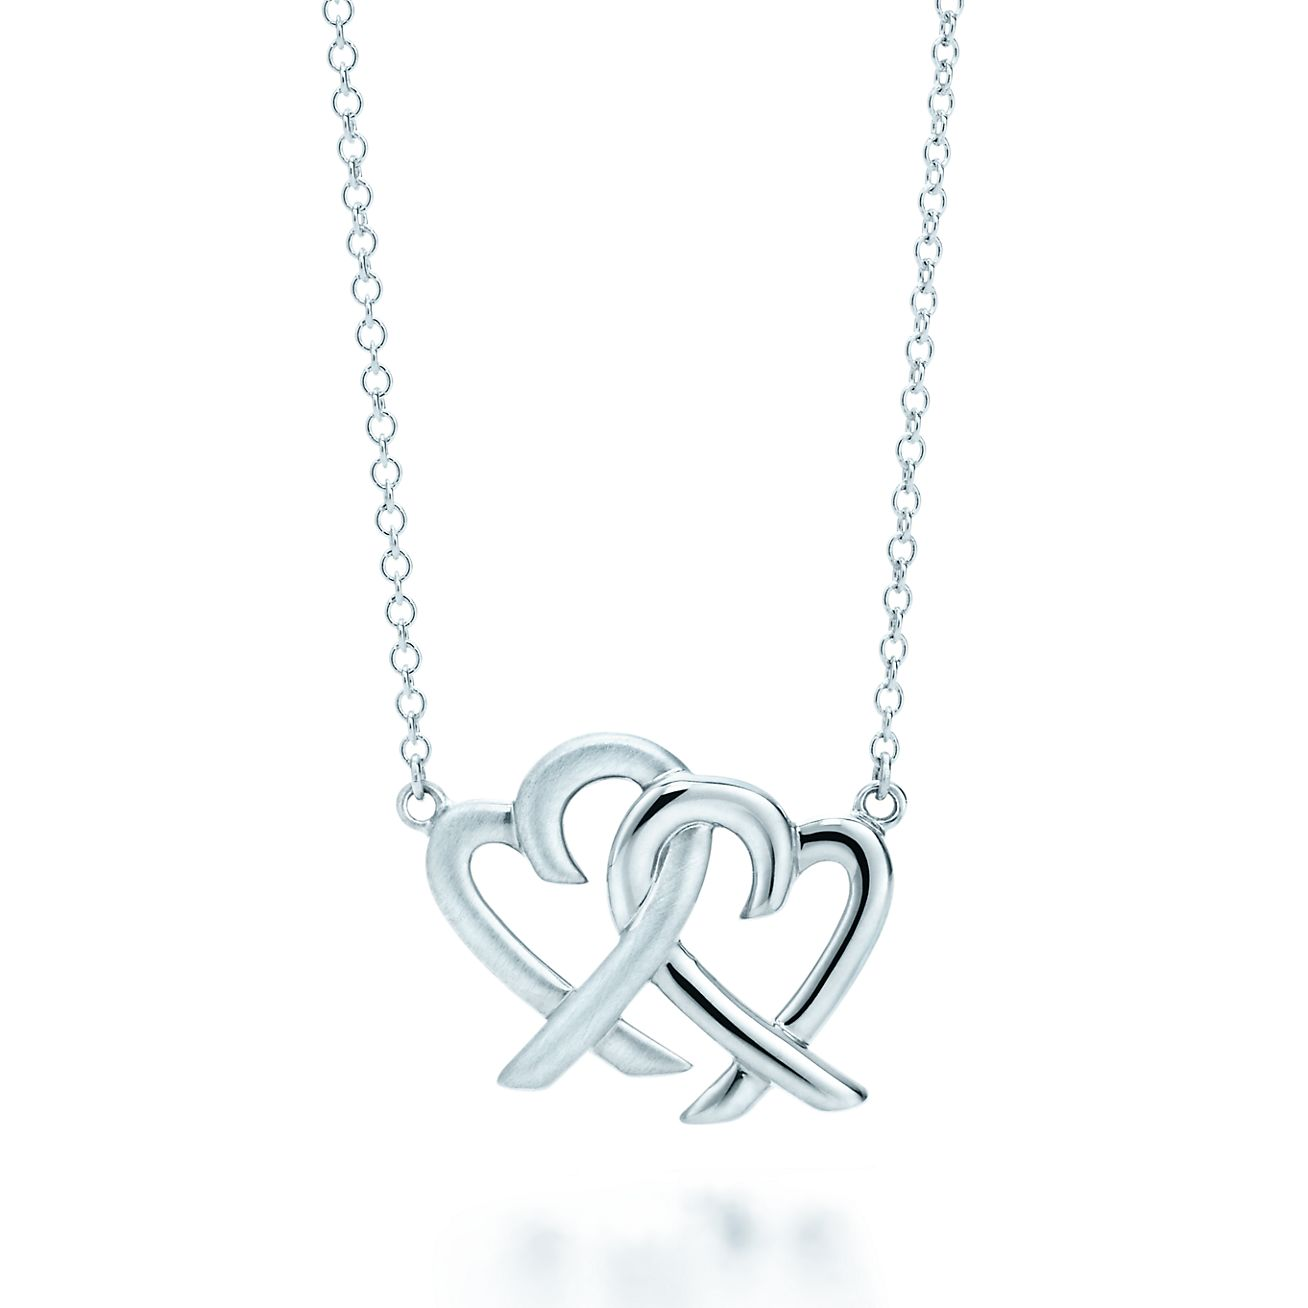 Paloma Pico Loving Heart Interlocking Pendant